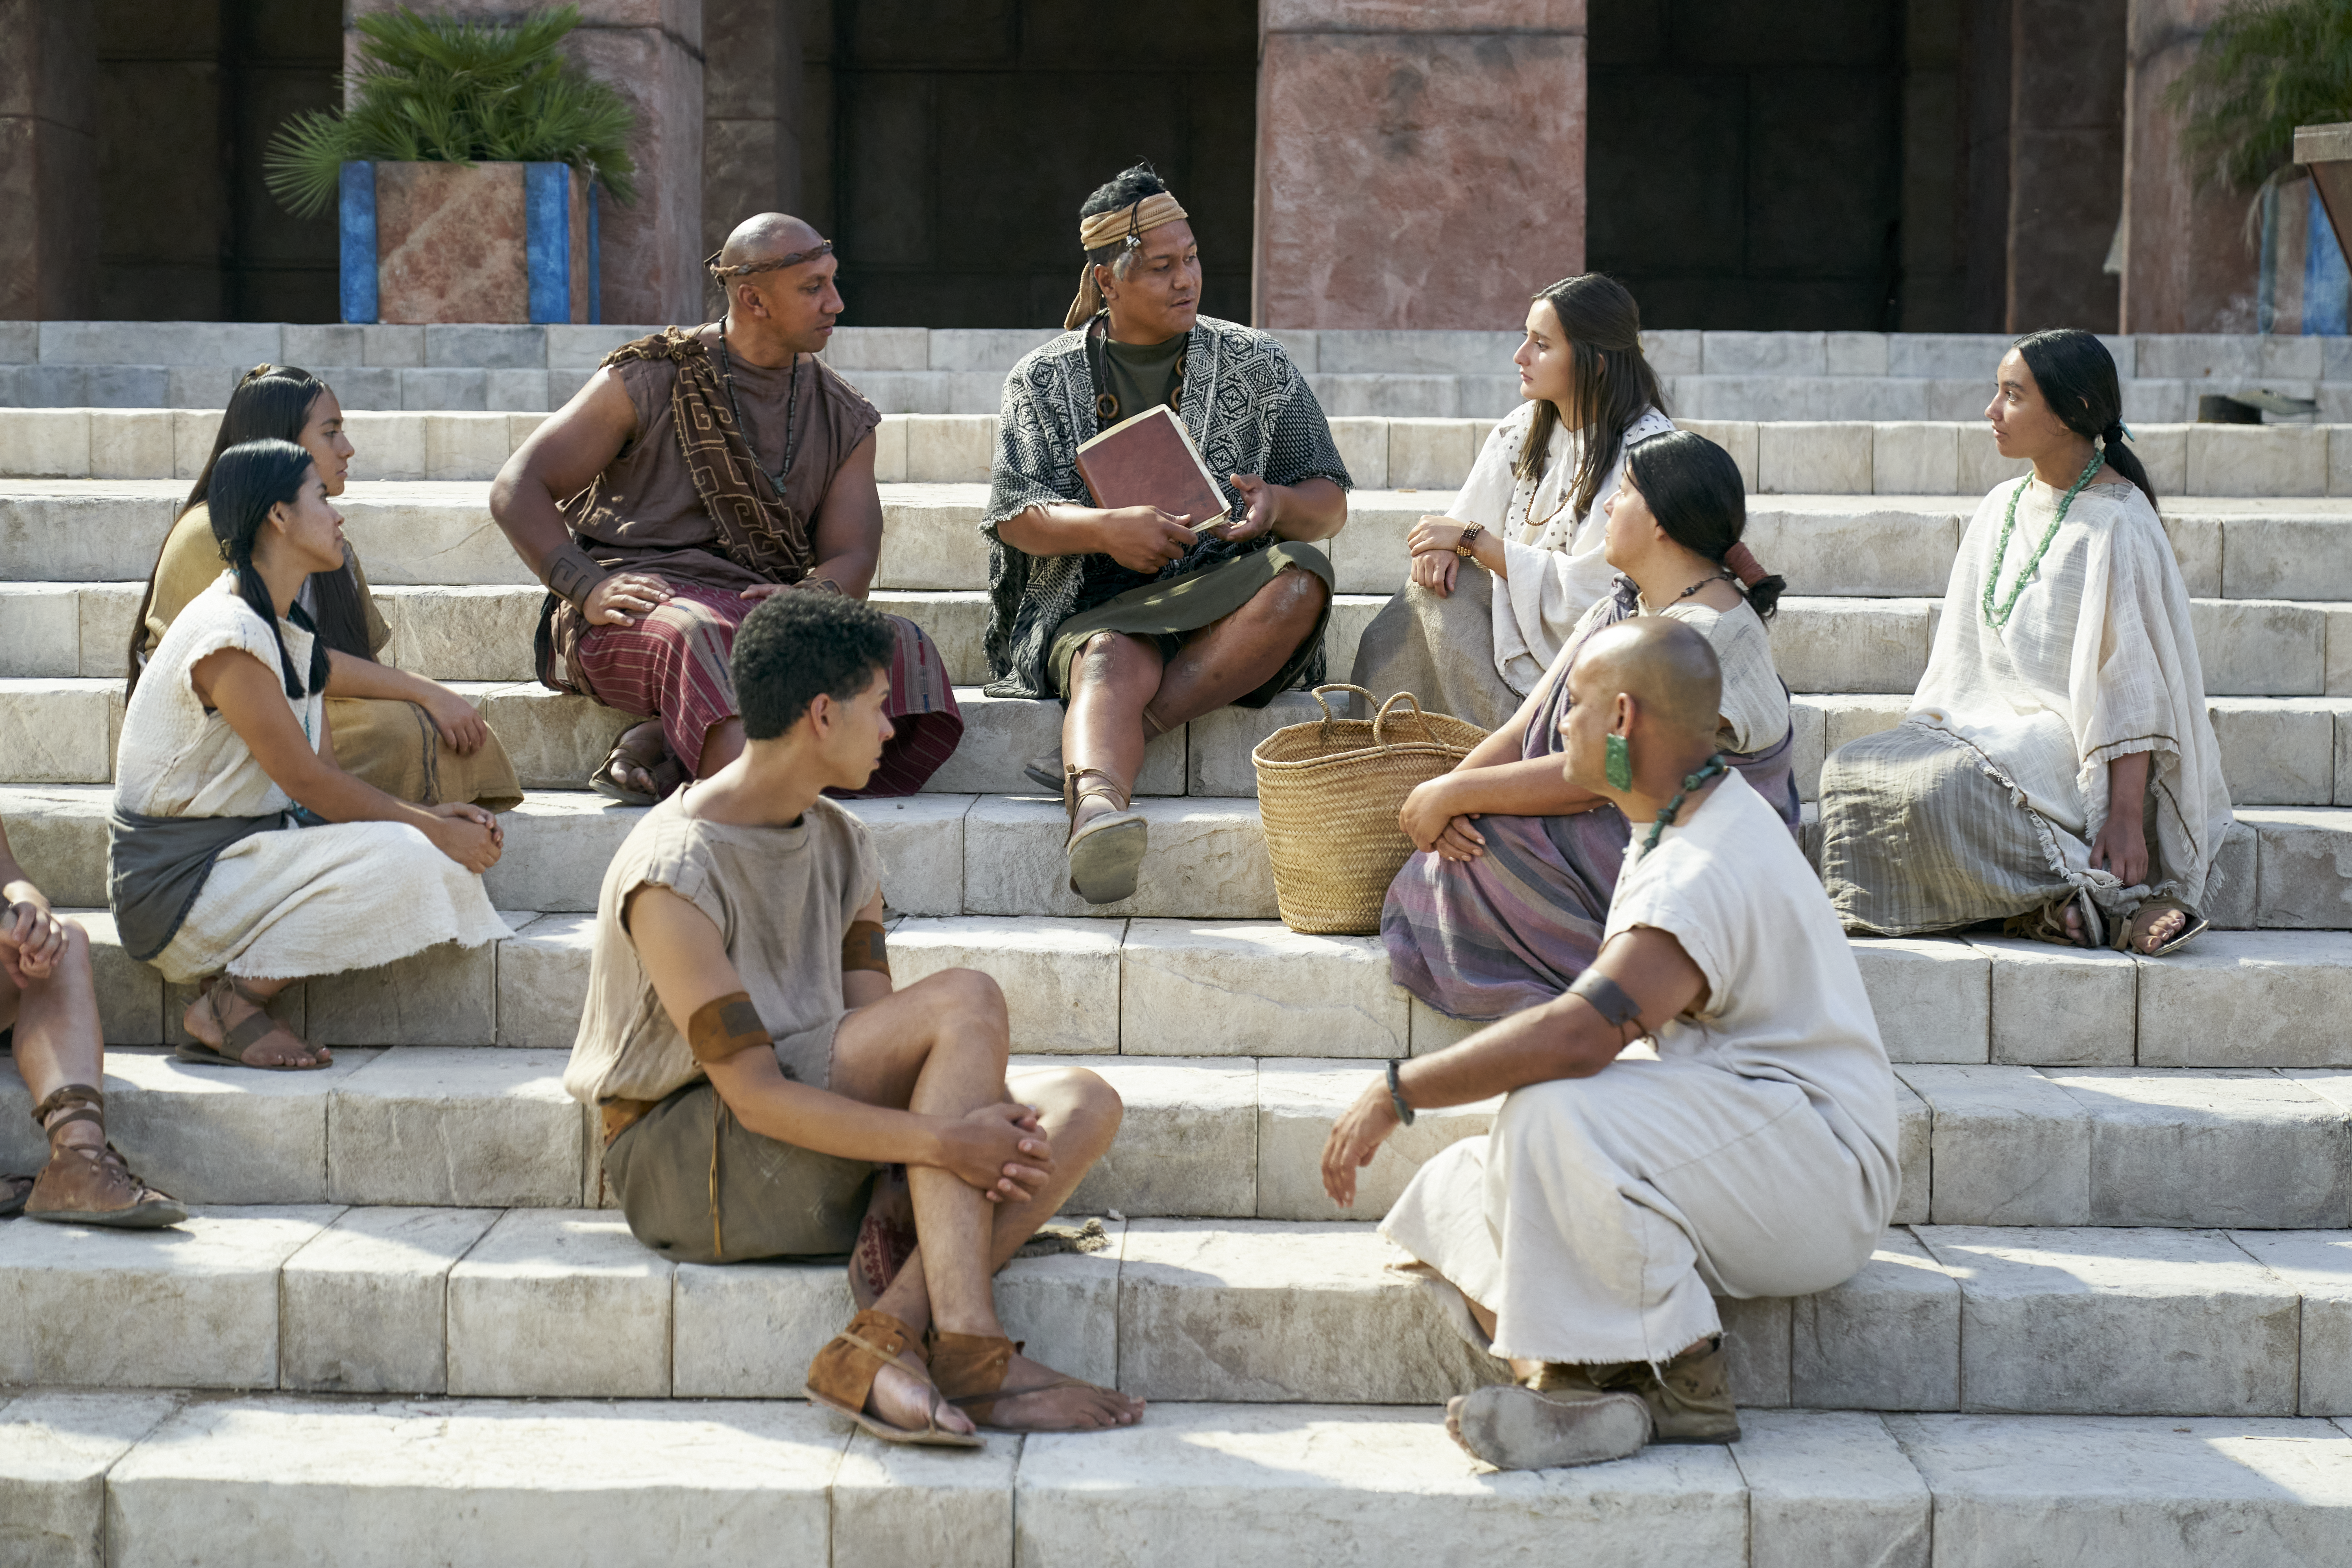 People gather to learn on the steps of the city as a man teaches in the city of Zarahemla.